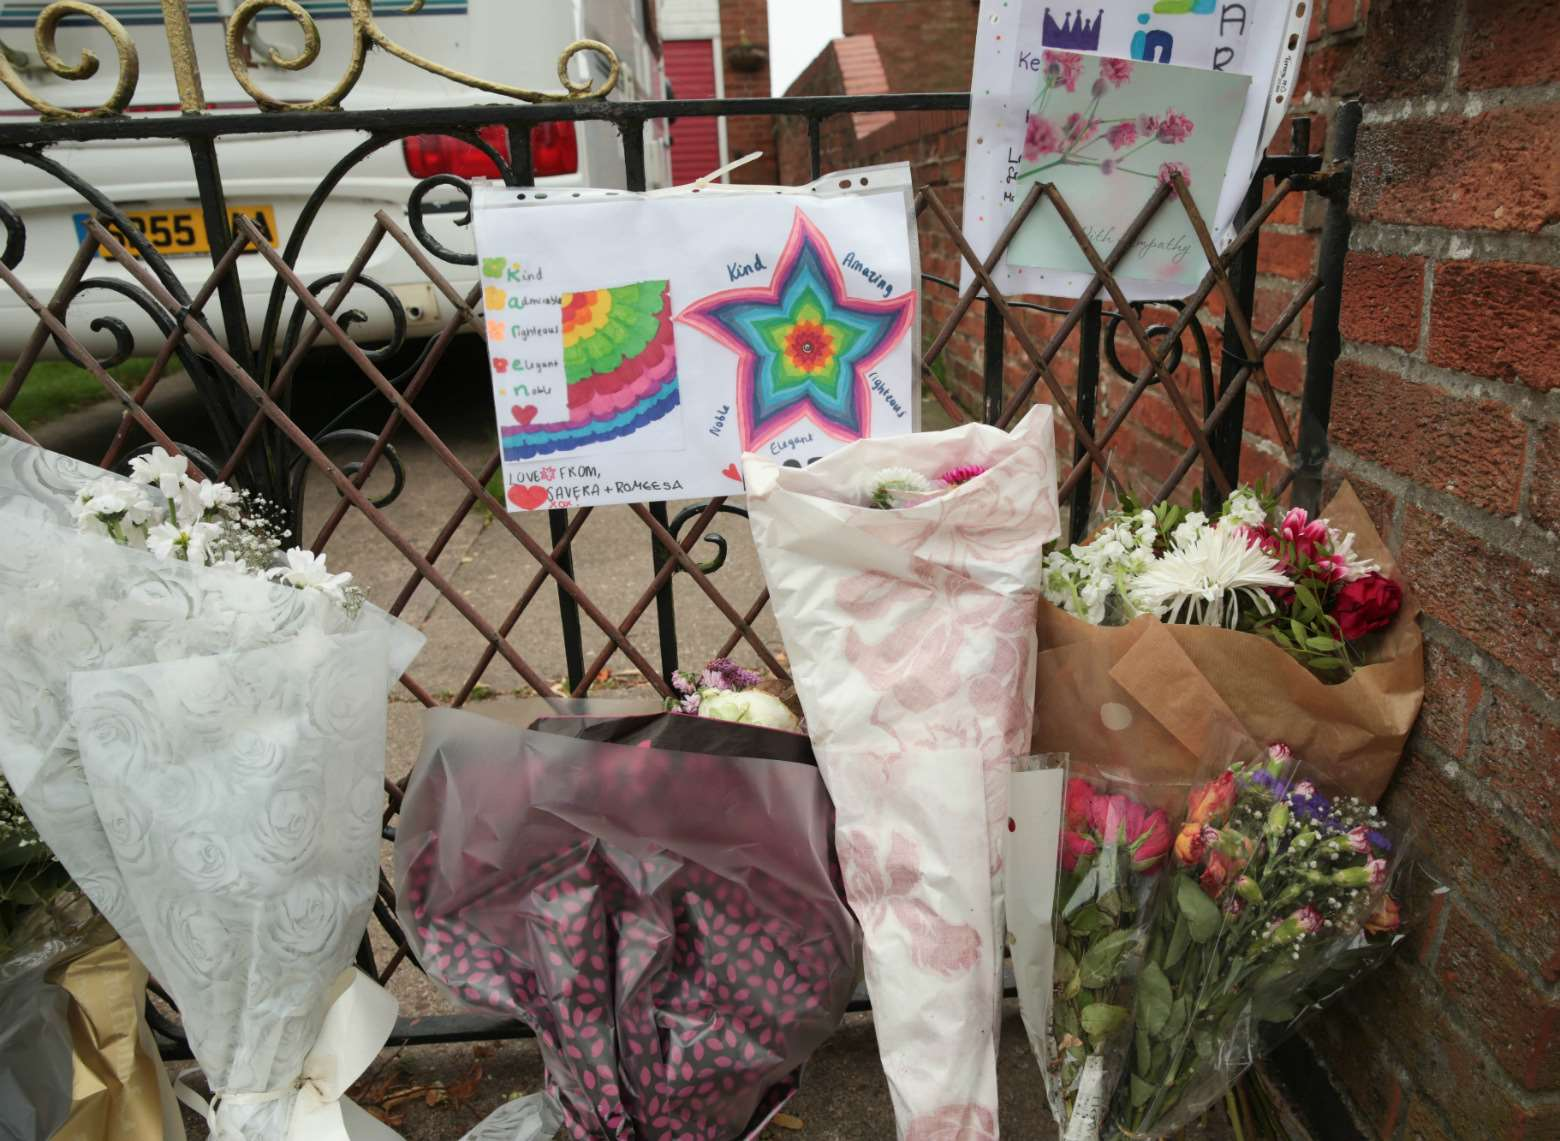 Floral tributes left outside the house on Millgate, Newark